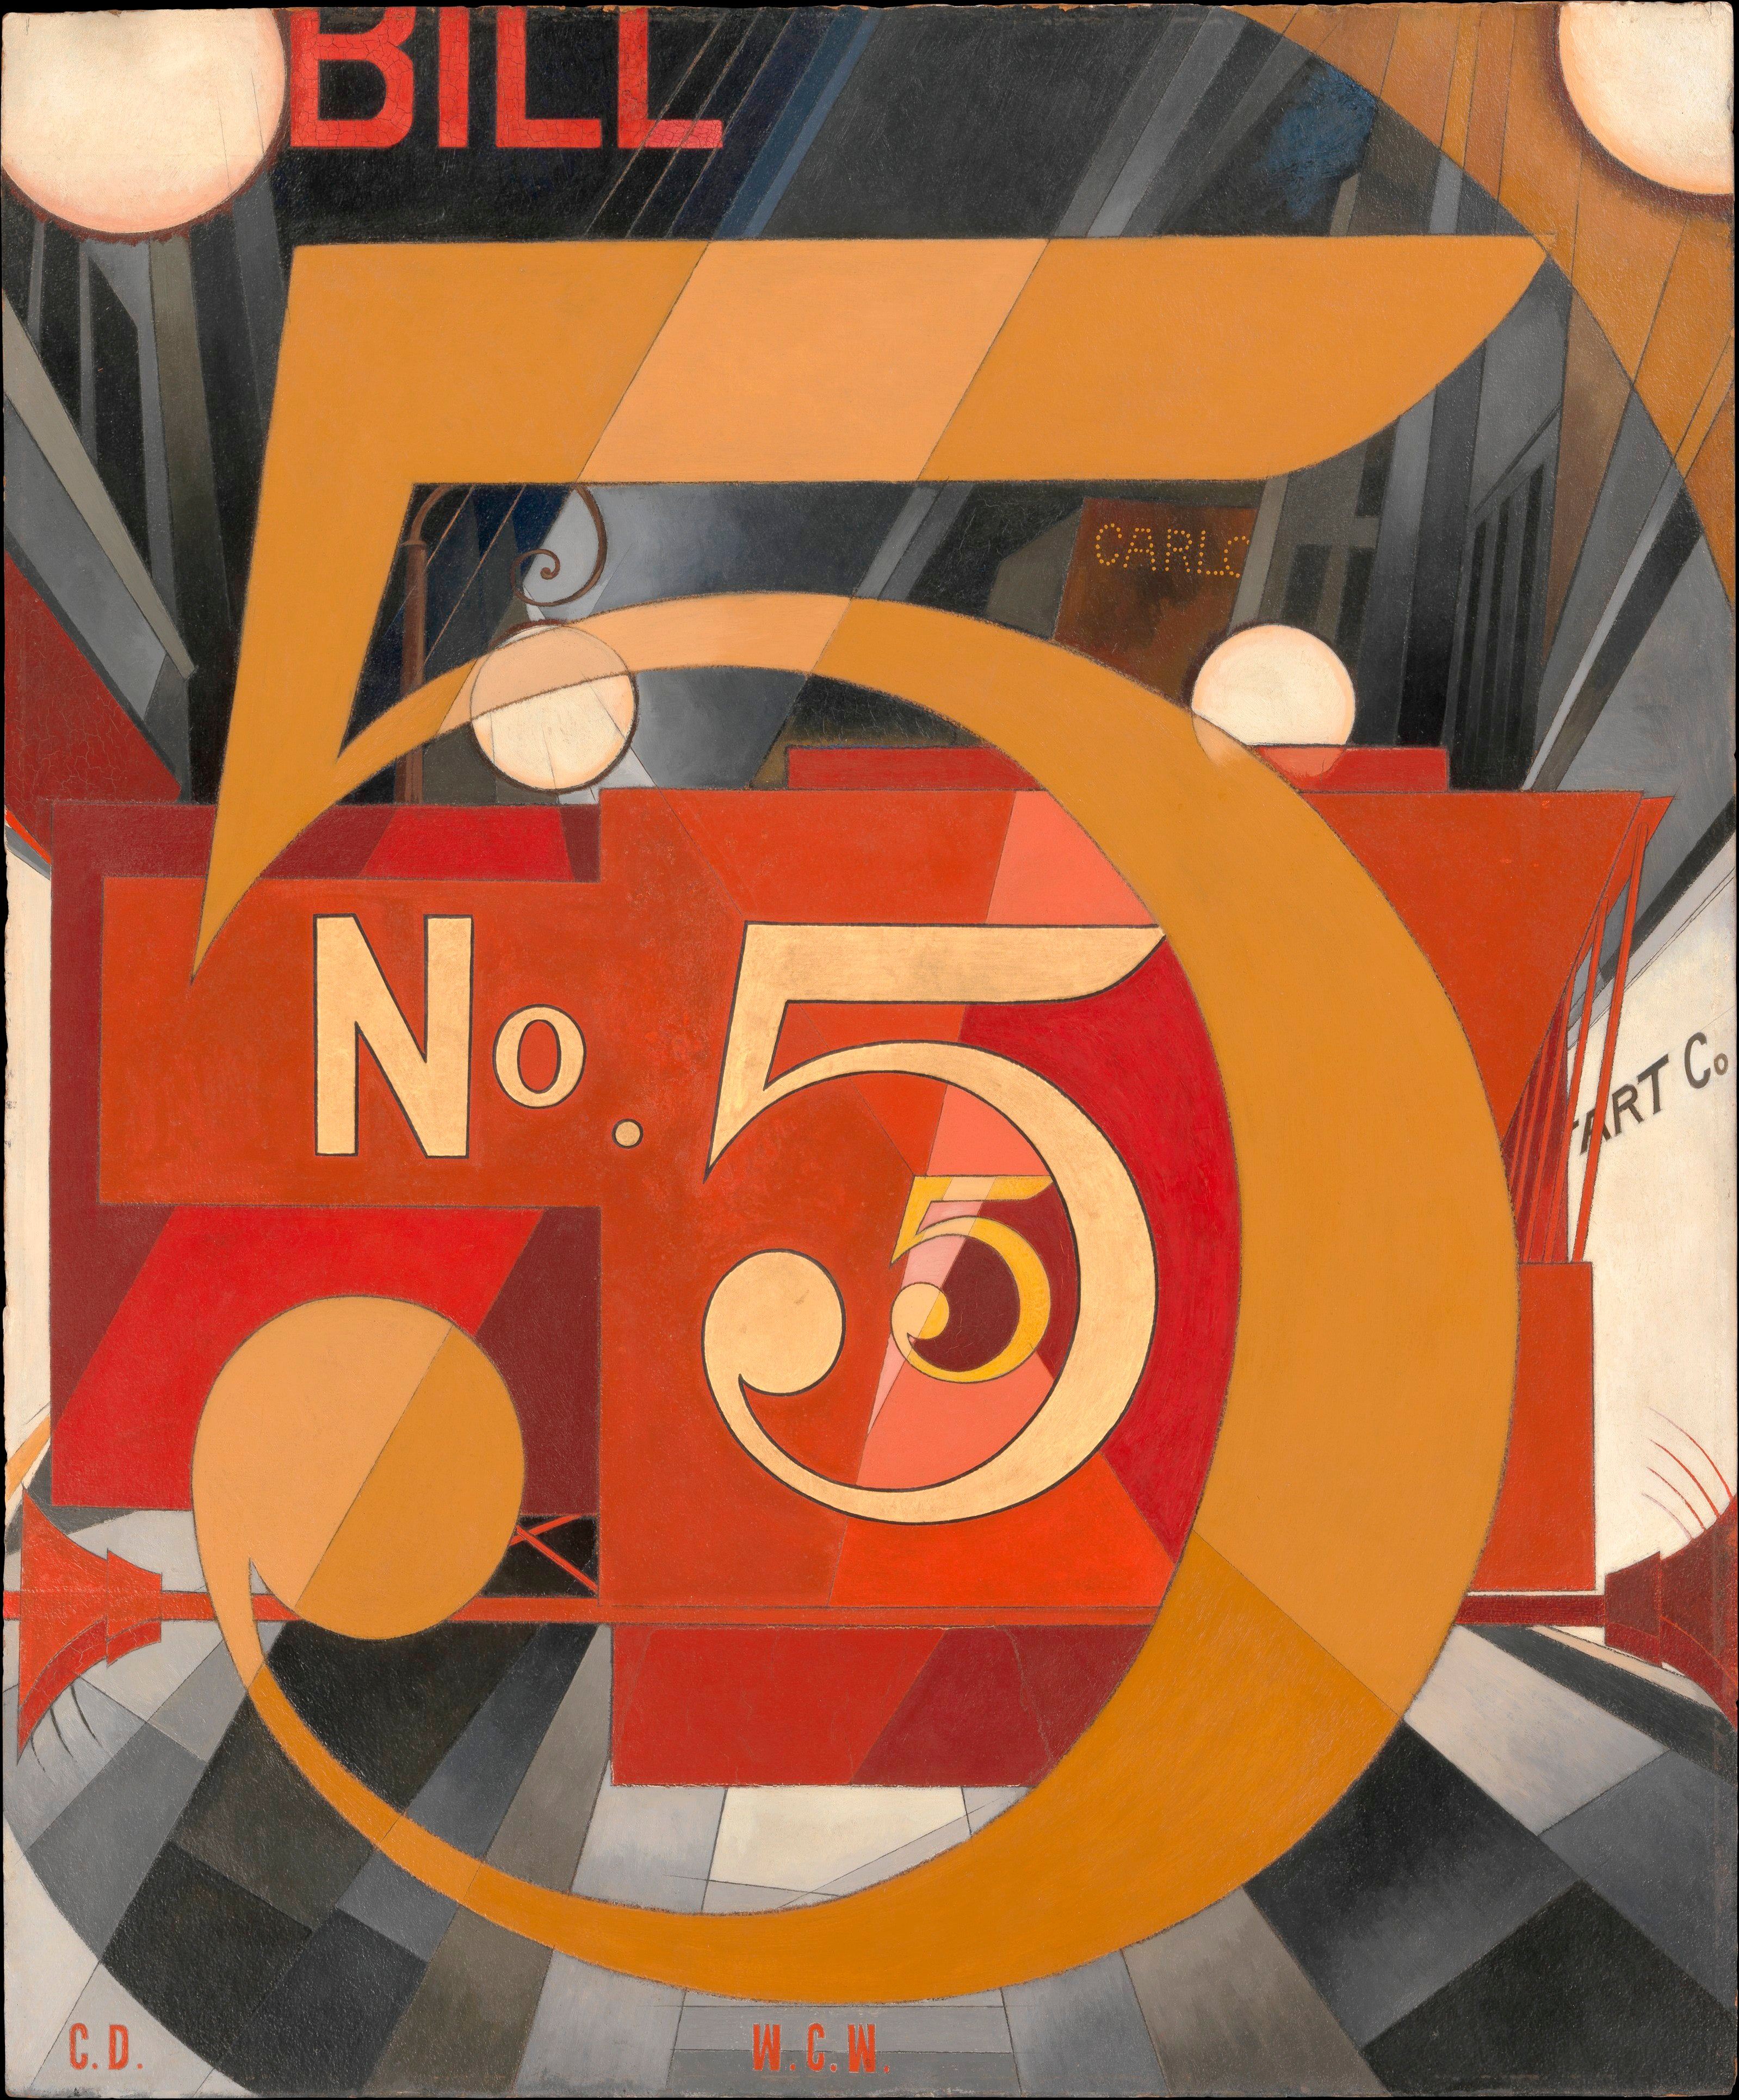 Math At The Met Scientific American More Information About Dog Origami Diagram On Site Http Static Figure 5 In Gold Charles Demuth 18831935 1928 Alfred Stieglitz Collection 1949 Accession Number 49591 Metmuseumorg